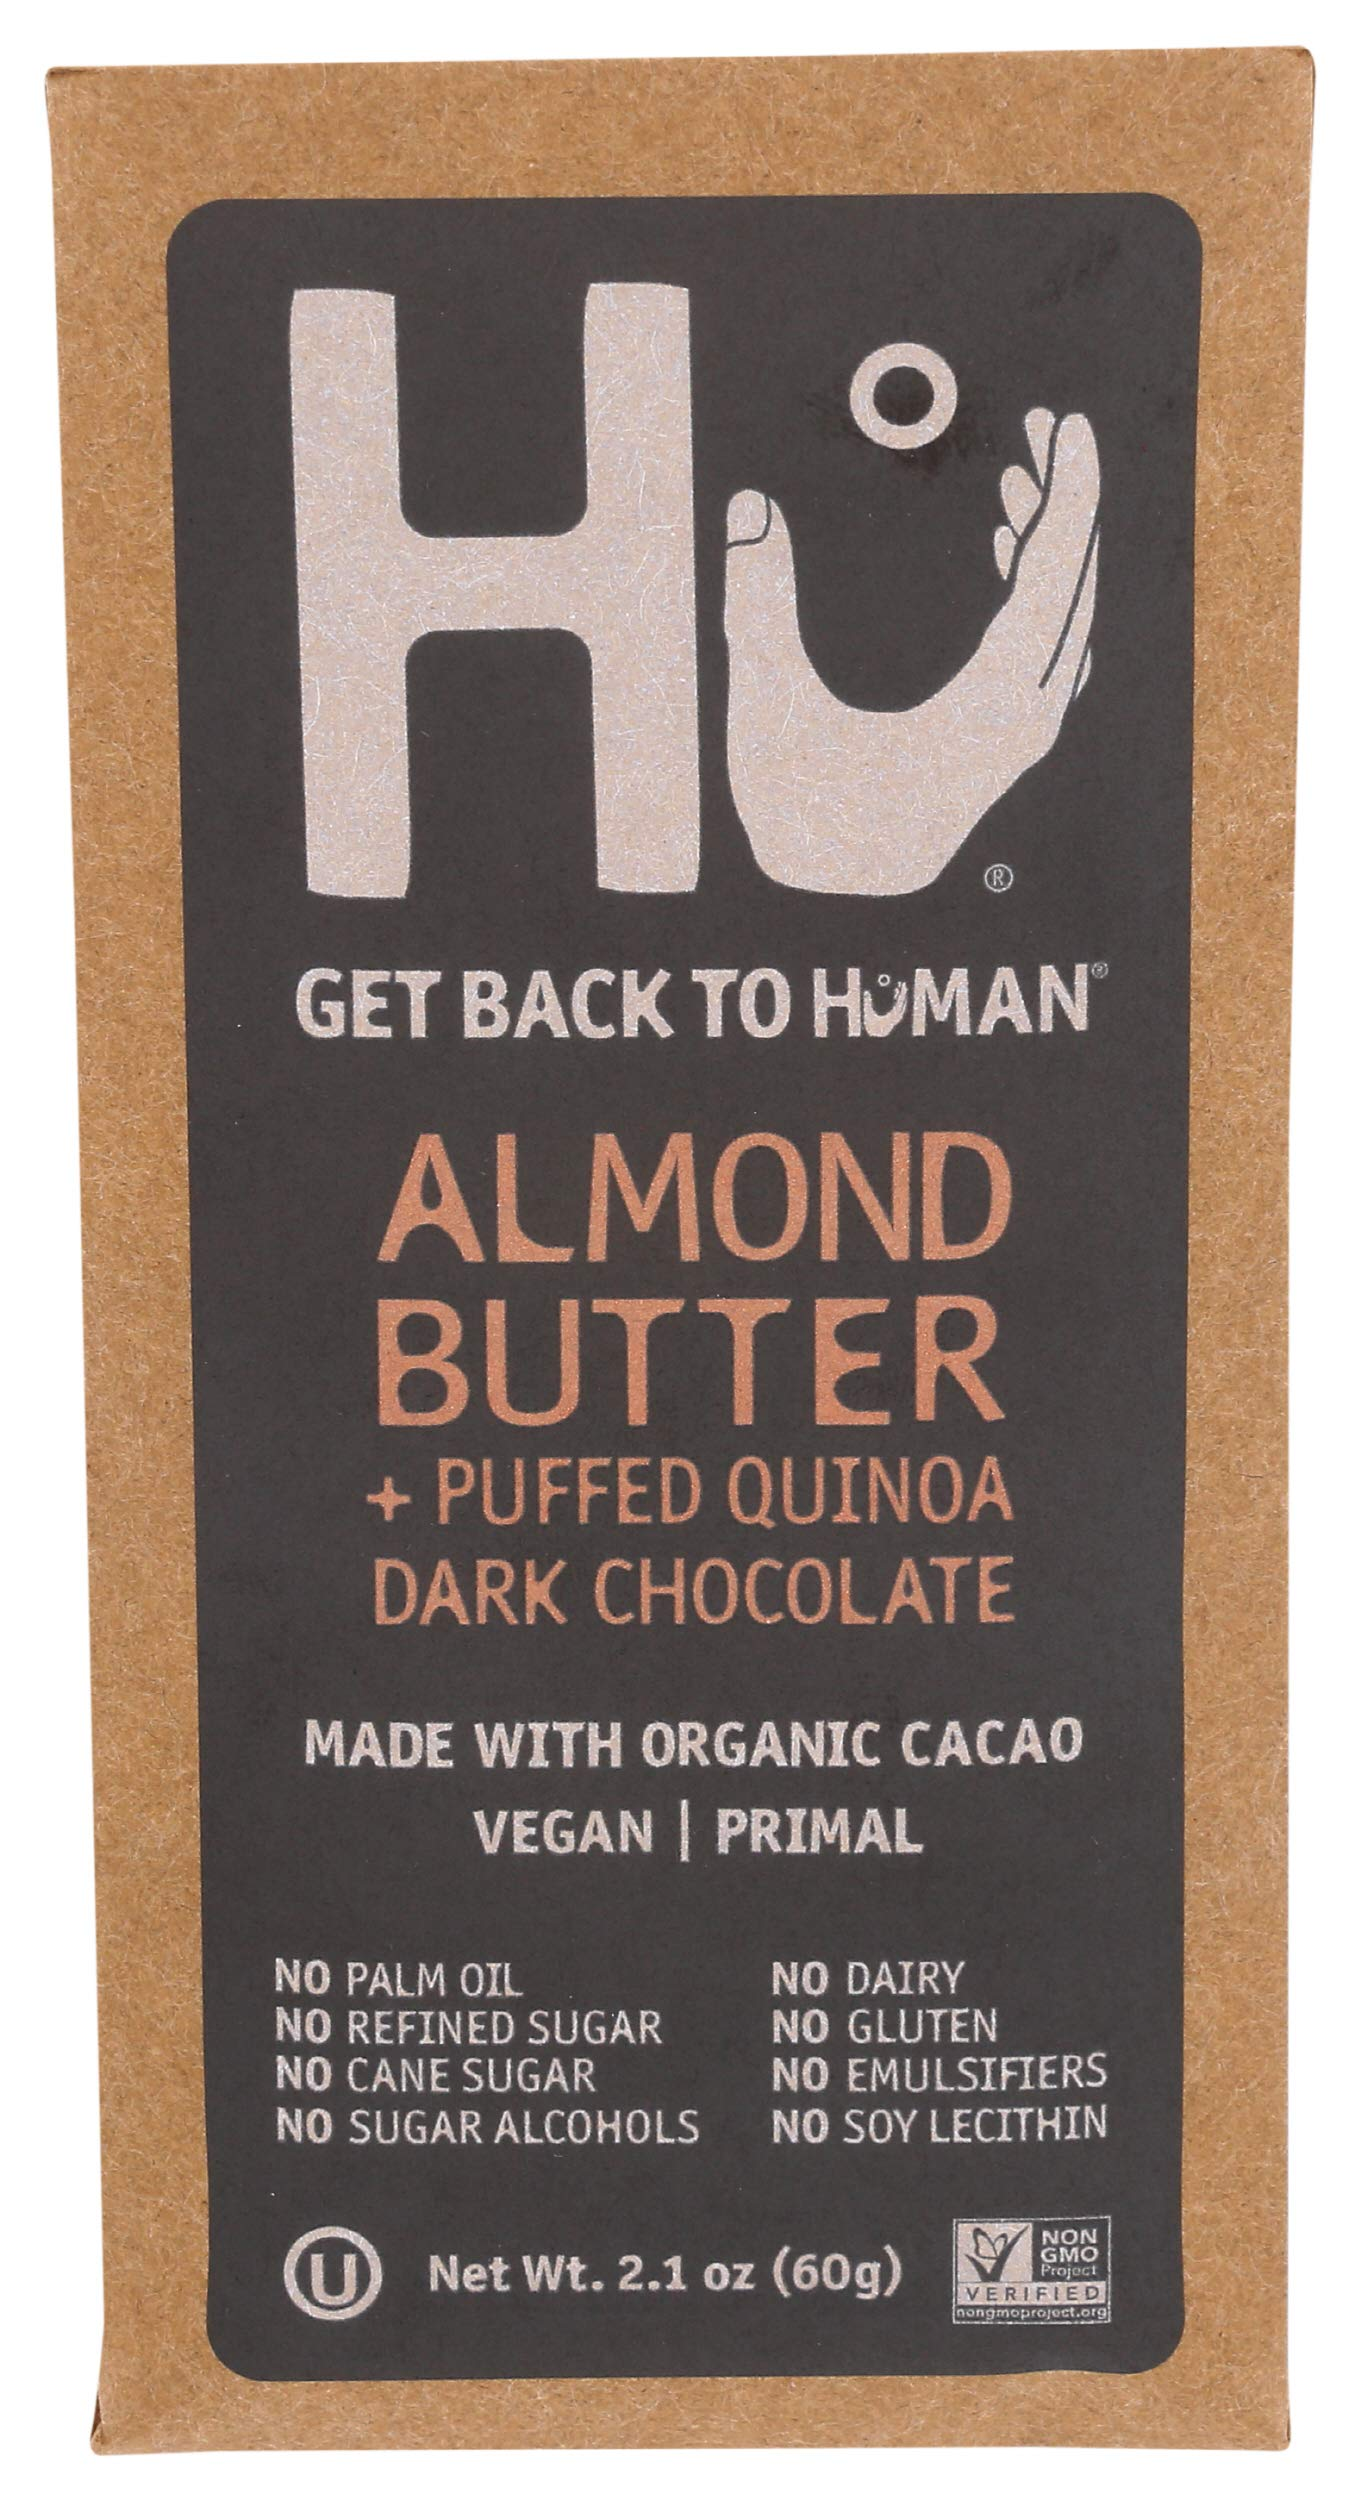 HU KITCHEN Almond Butter & Puffed Quinoa Chocolate Bar, 2.1 OZ